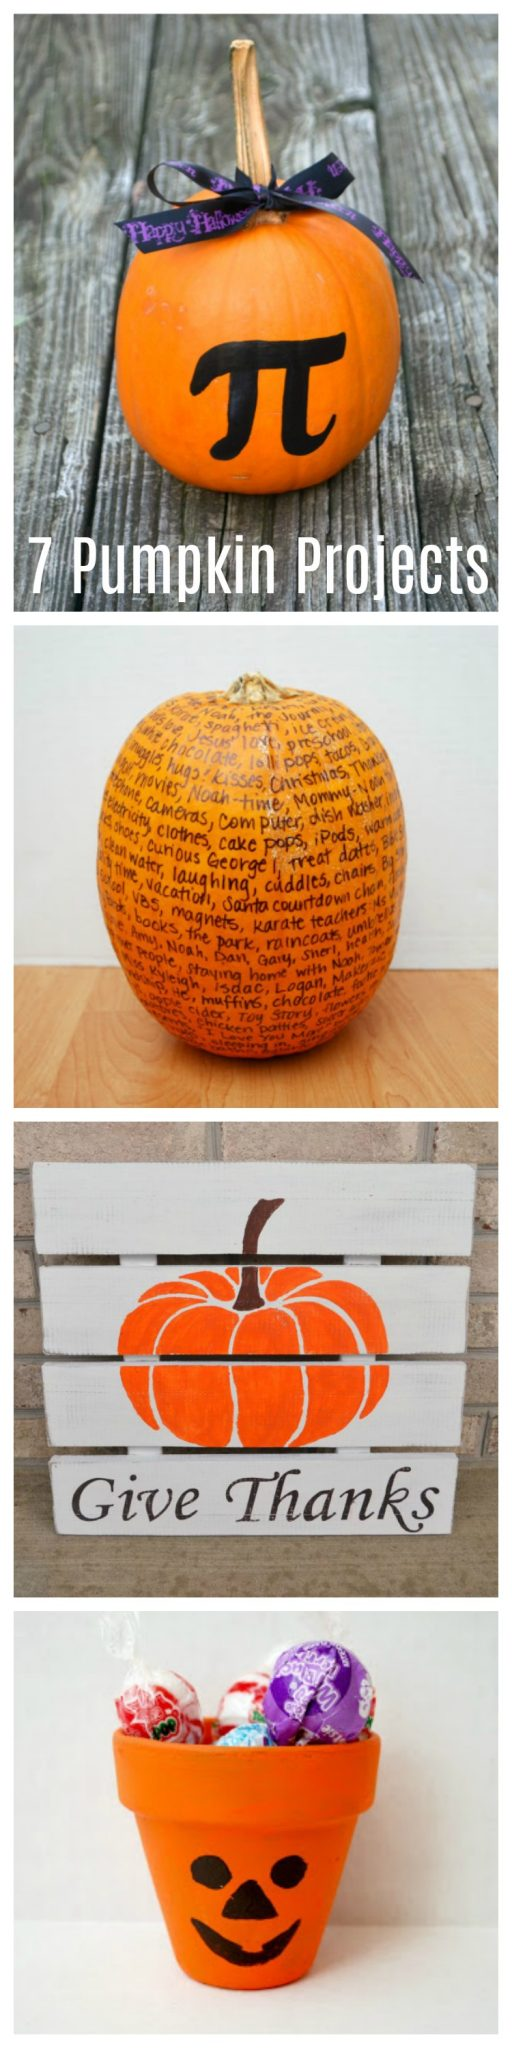 7 Easy Pumpkin Projects for Fall